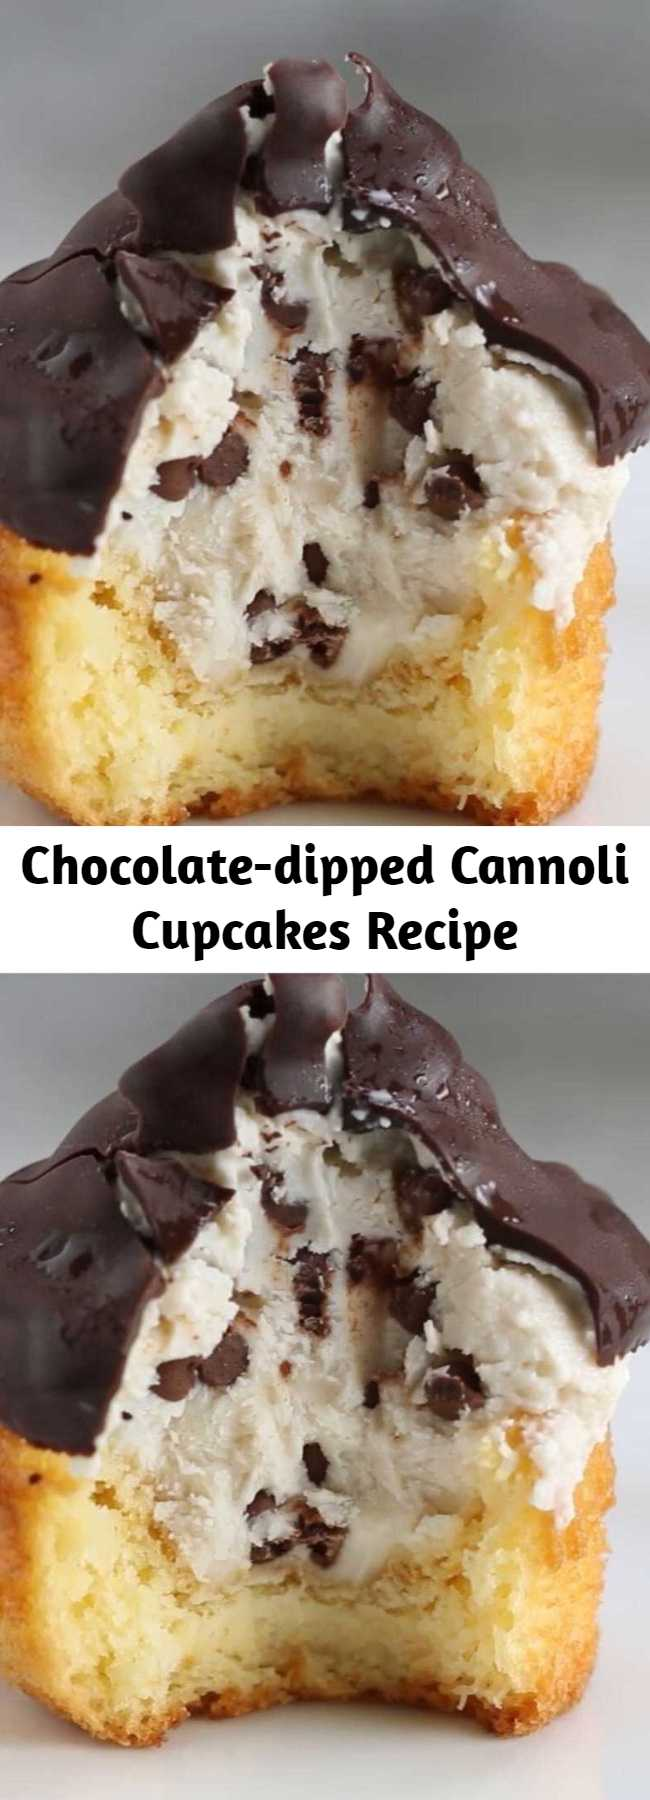 Chocolate-dipped Cannoli Cupcakes Recipe - Your favorite Italian dessert just got even better! This Chocolate Dipped Cannoli Cupcake taste just like your eating an Italian Cannoli only in cupcake form!